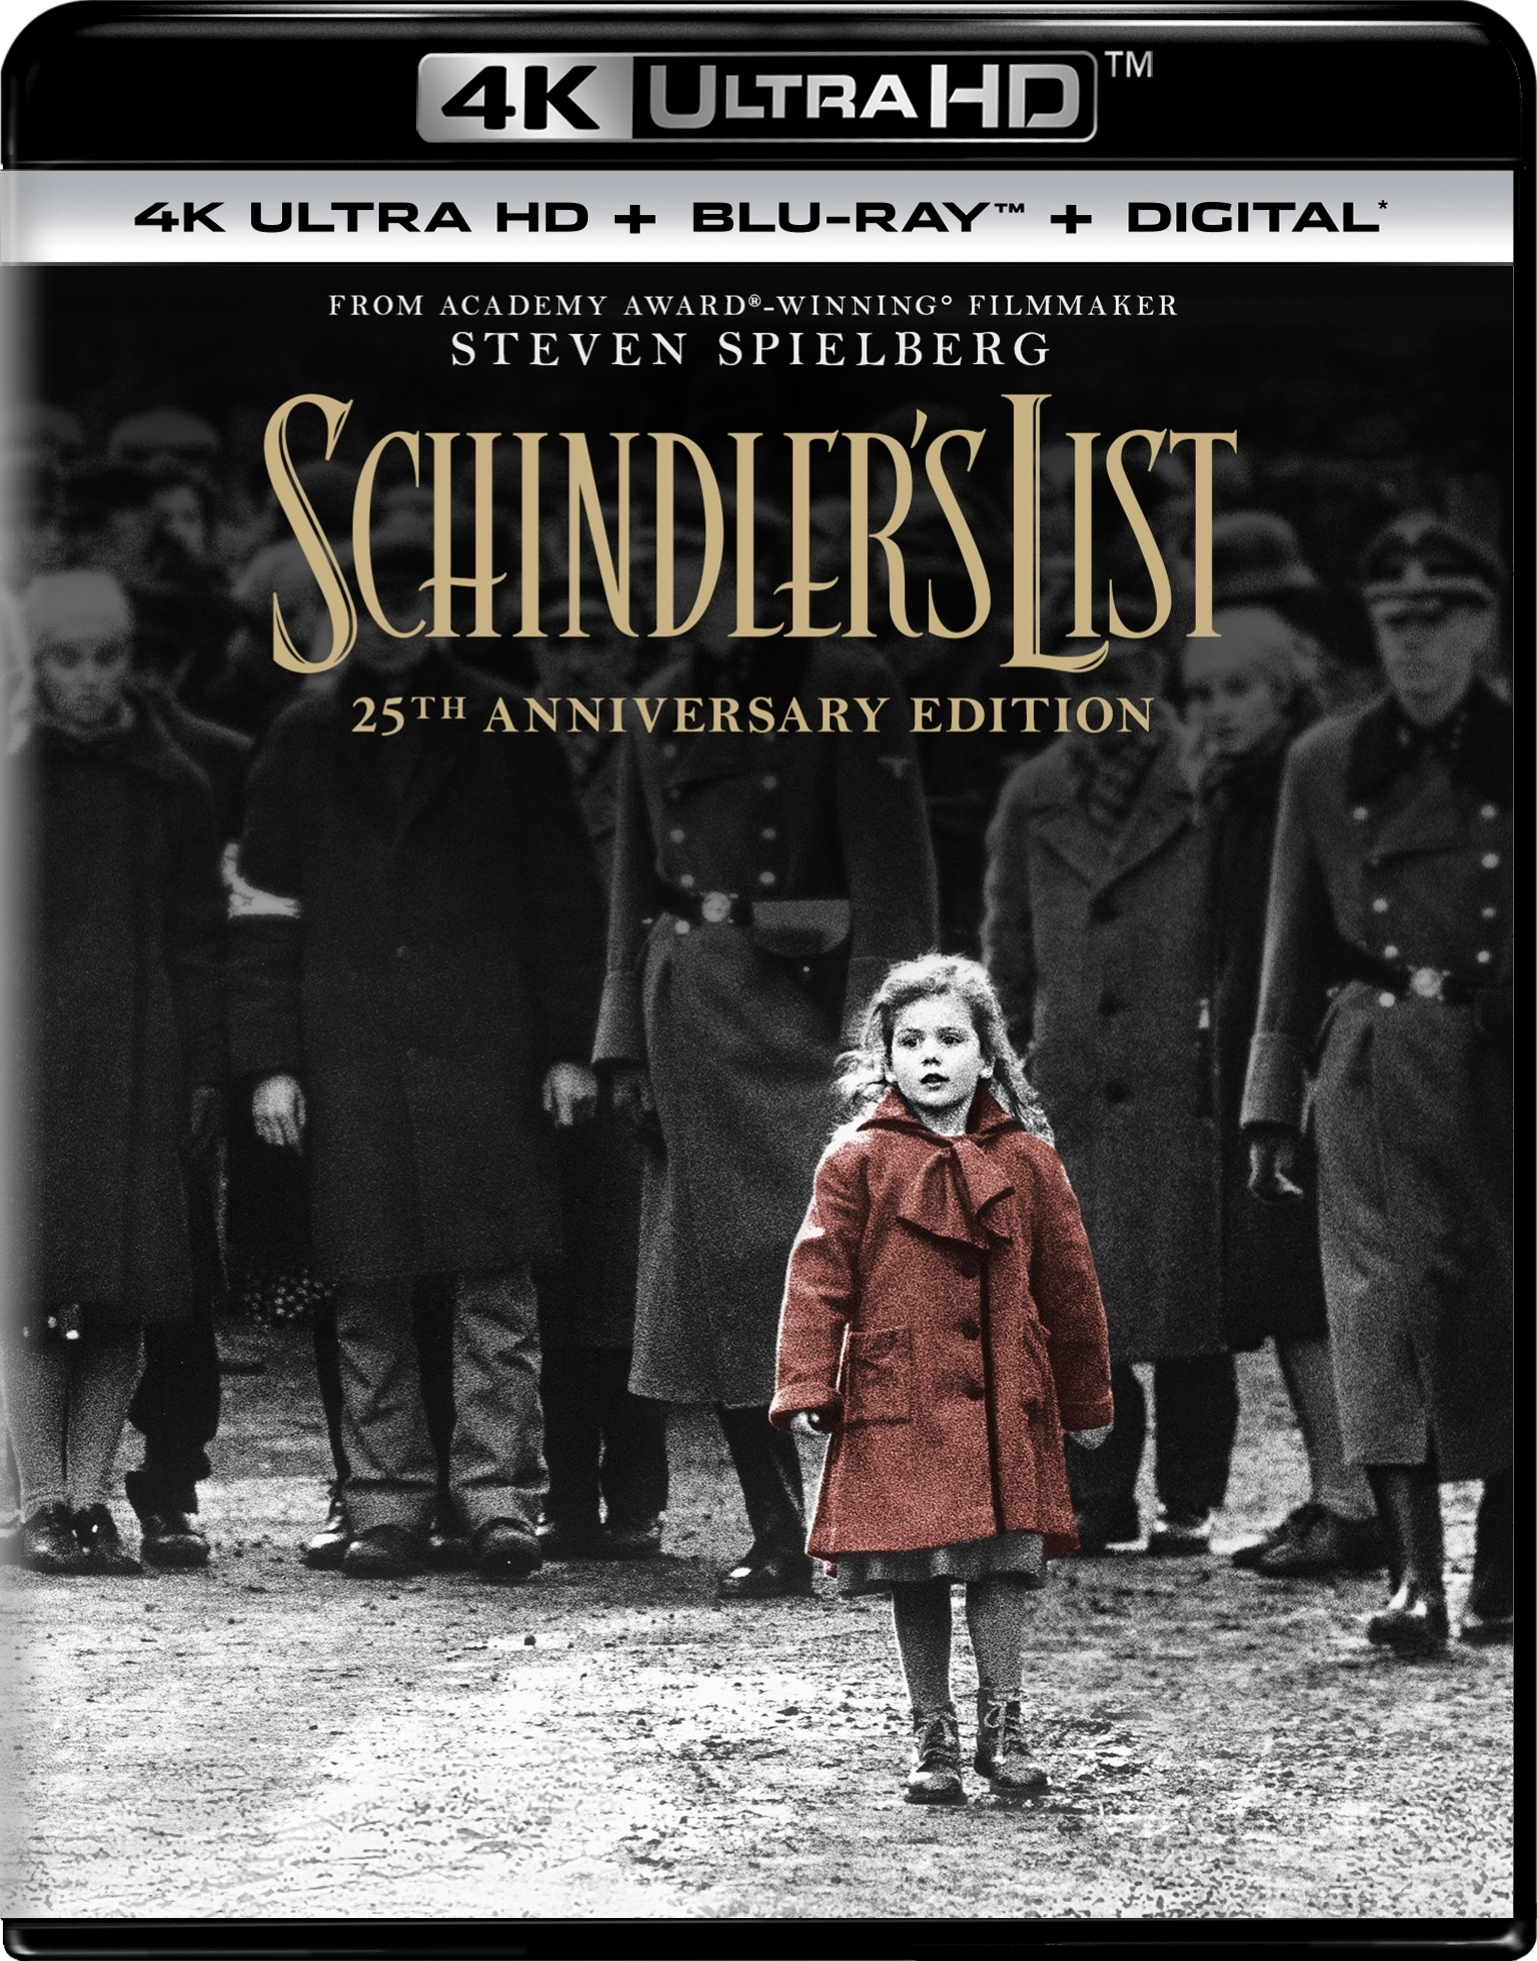 Schindlers List (1993) poster image